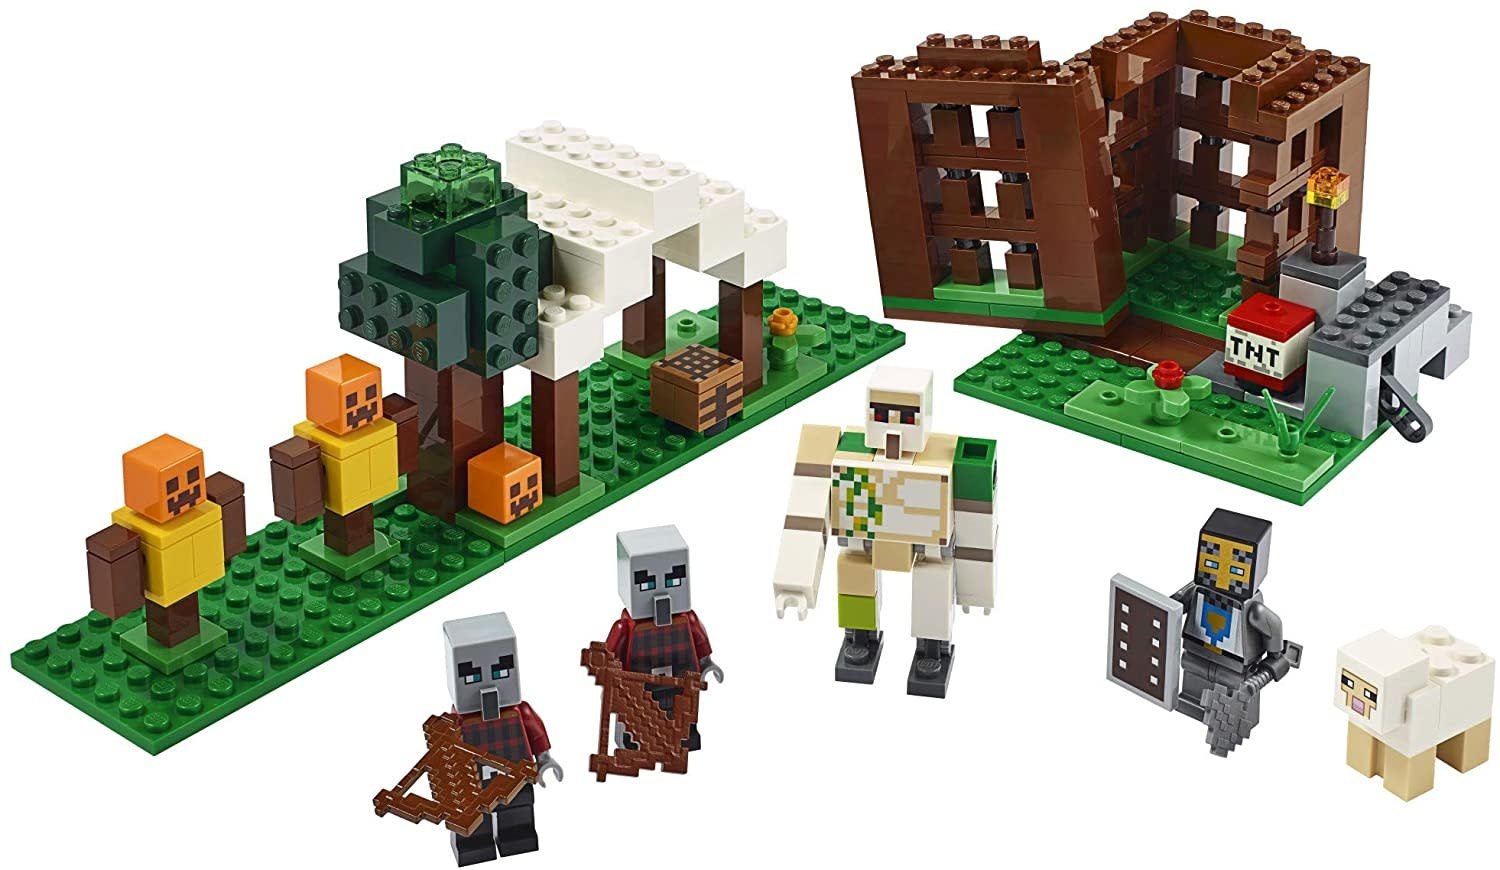 21159 The Pillager Outpost by LEGO Minecraft